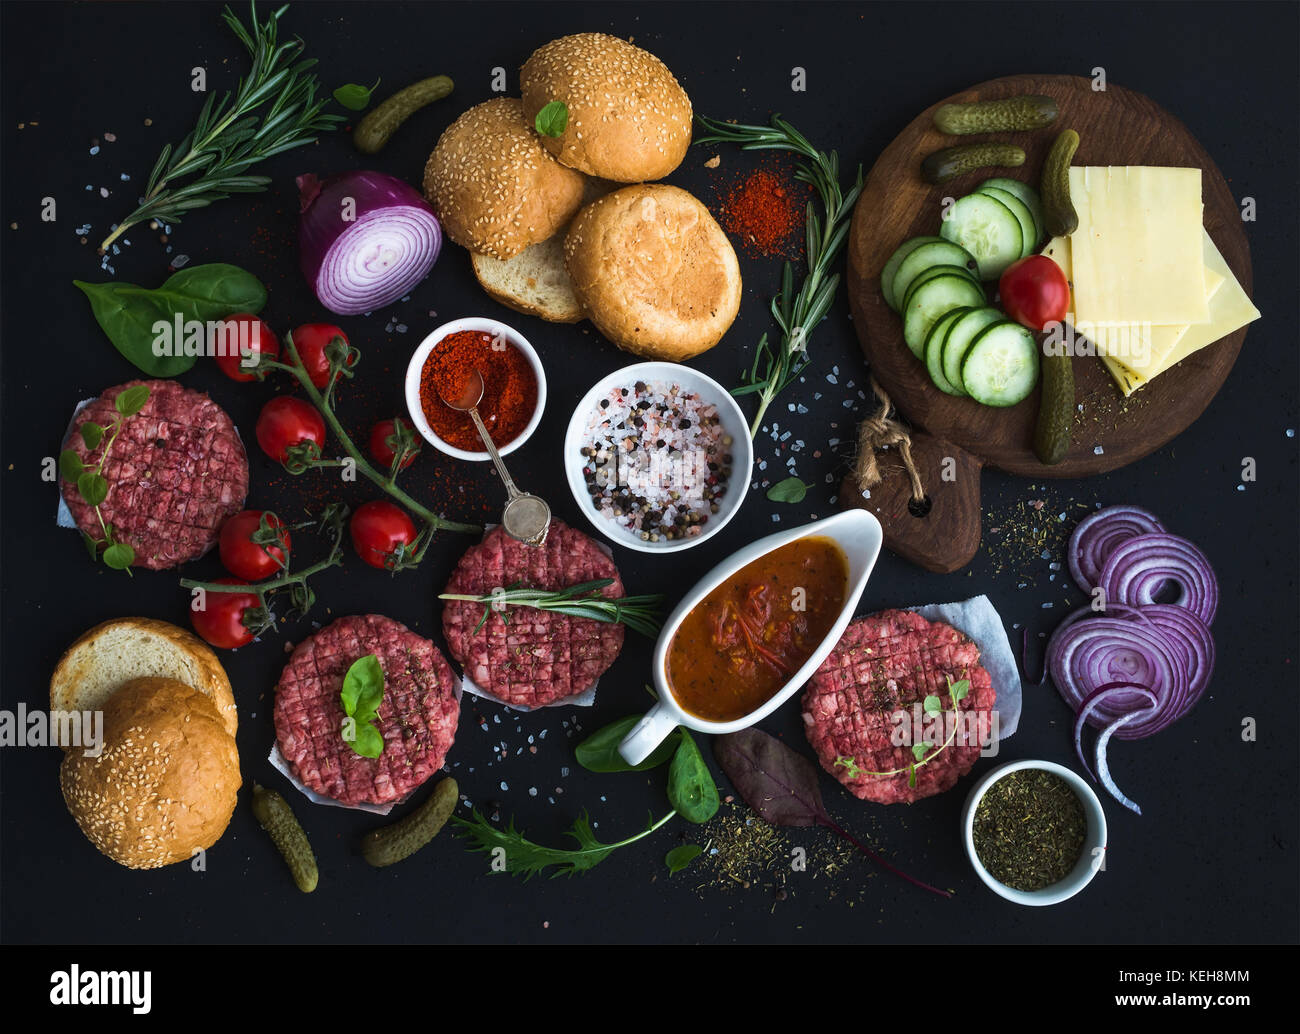 Ingredients for cooking burgers. Raw ground beef meat cutlets, buns, red onion, cherry tomatoes, greens, pickles, - Stock Image